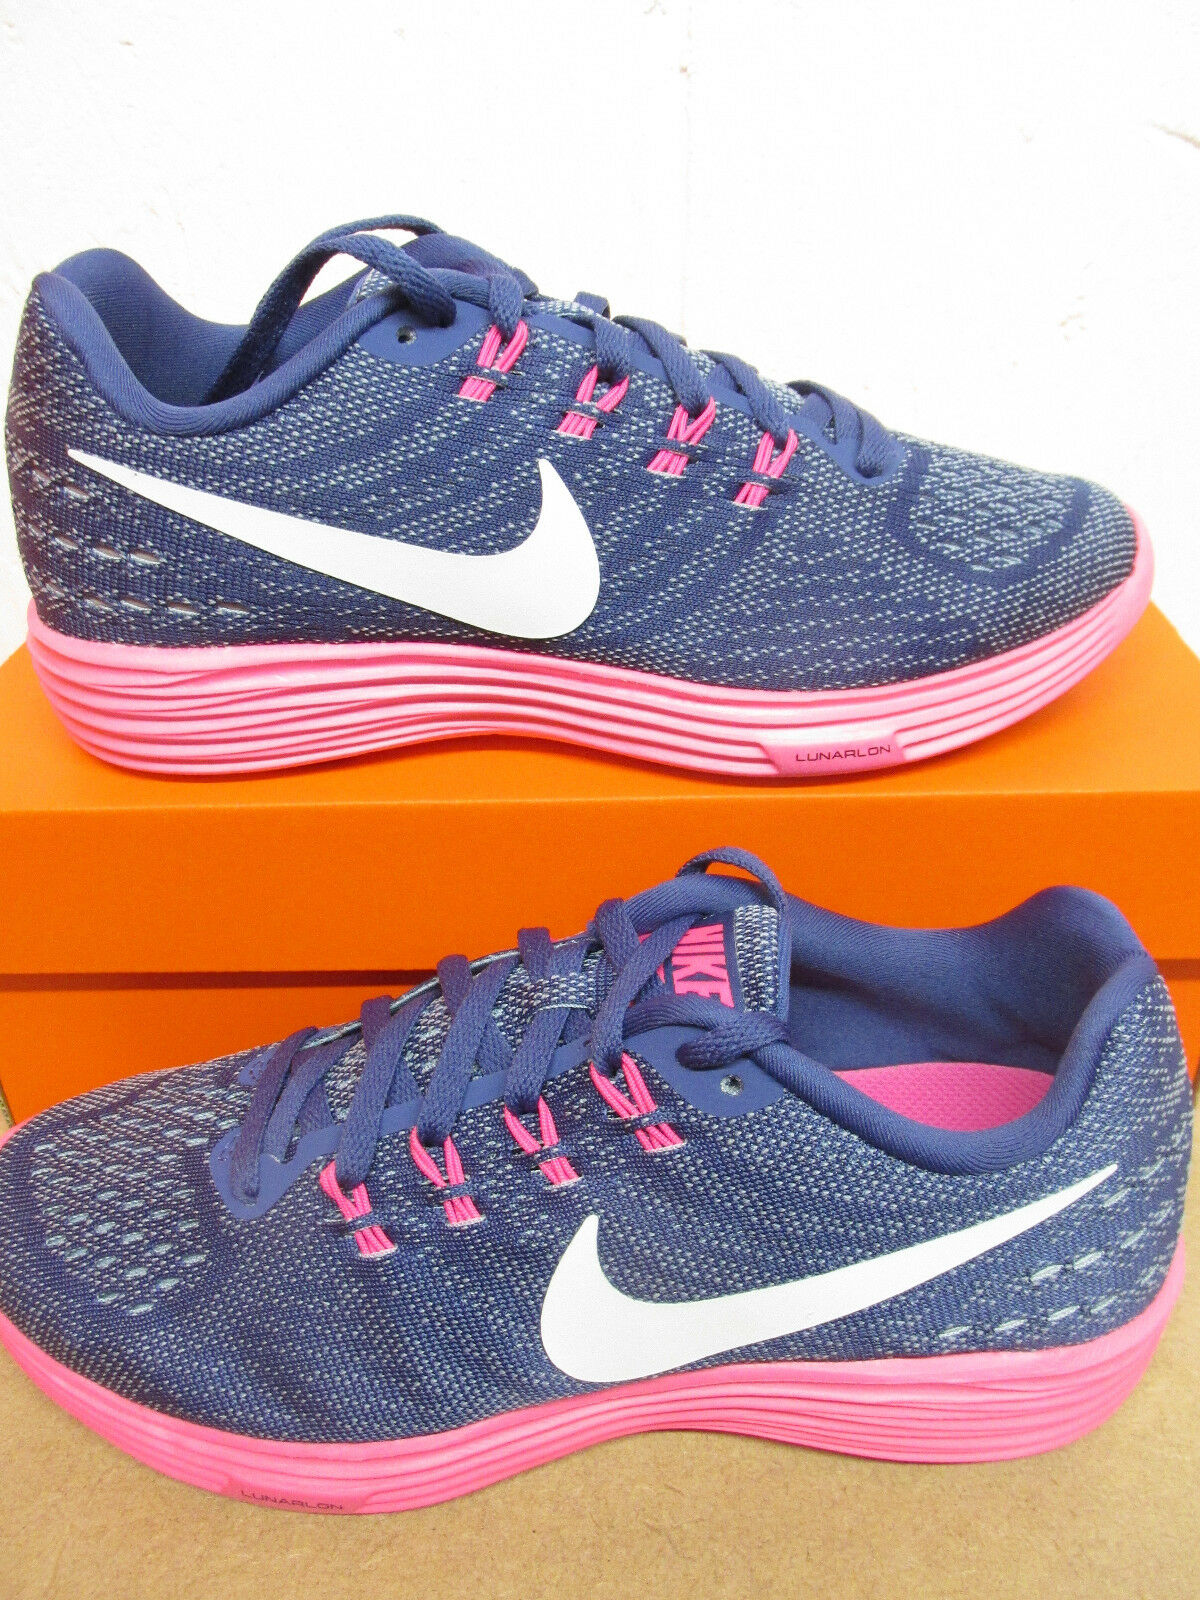 adaa9fb4997c Nike Womens Lunartempo 2 Running Running Running Trainers 818098 500  Sneakers Shoes 8f1ef9